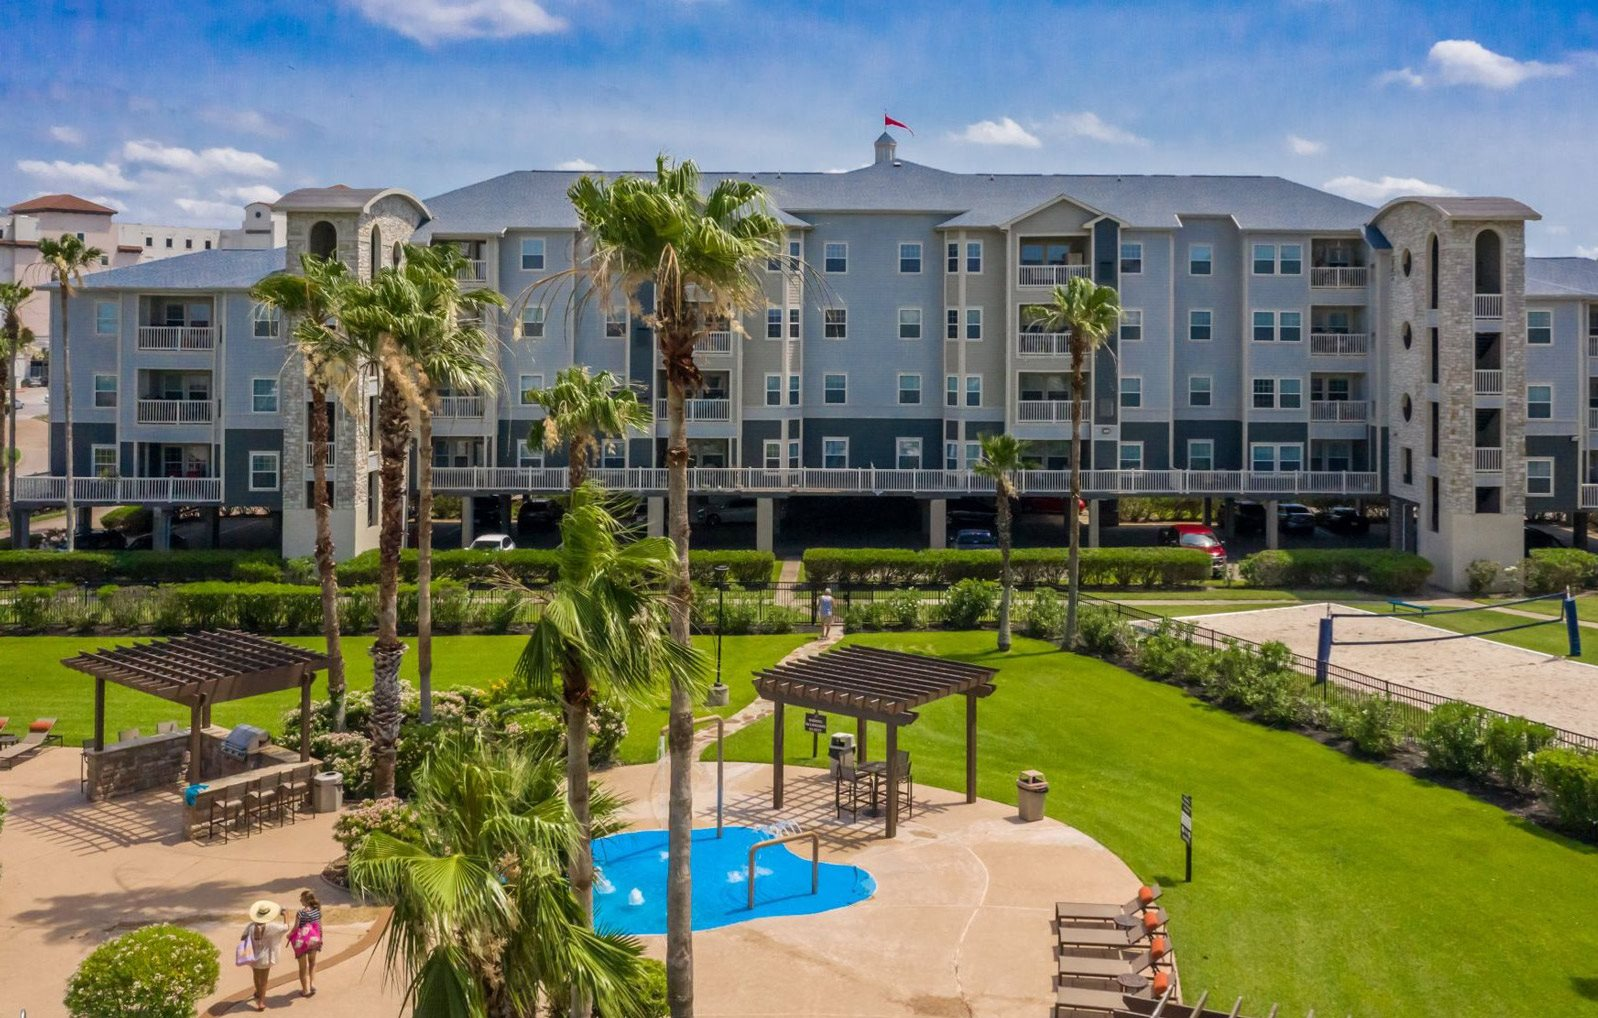 Apartment Community Outside Front View at The Club of the Isle, Galveston, Texas